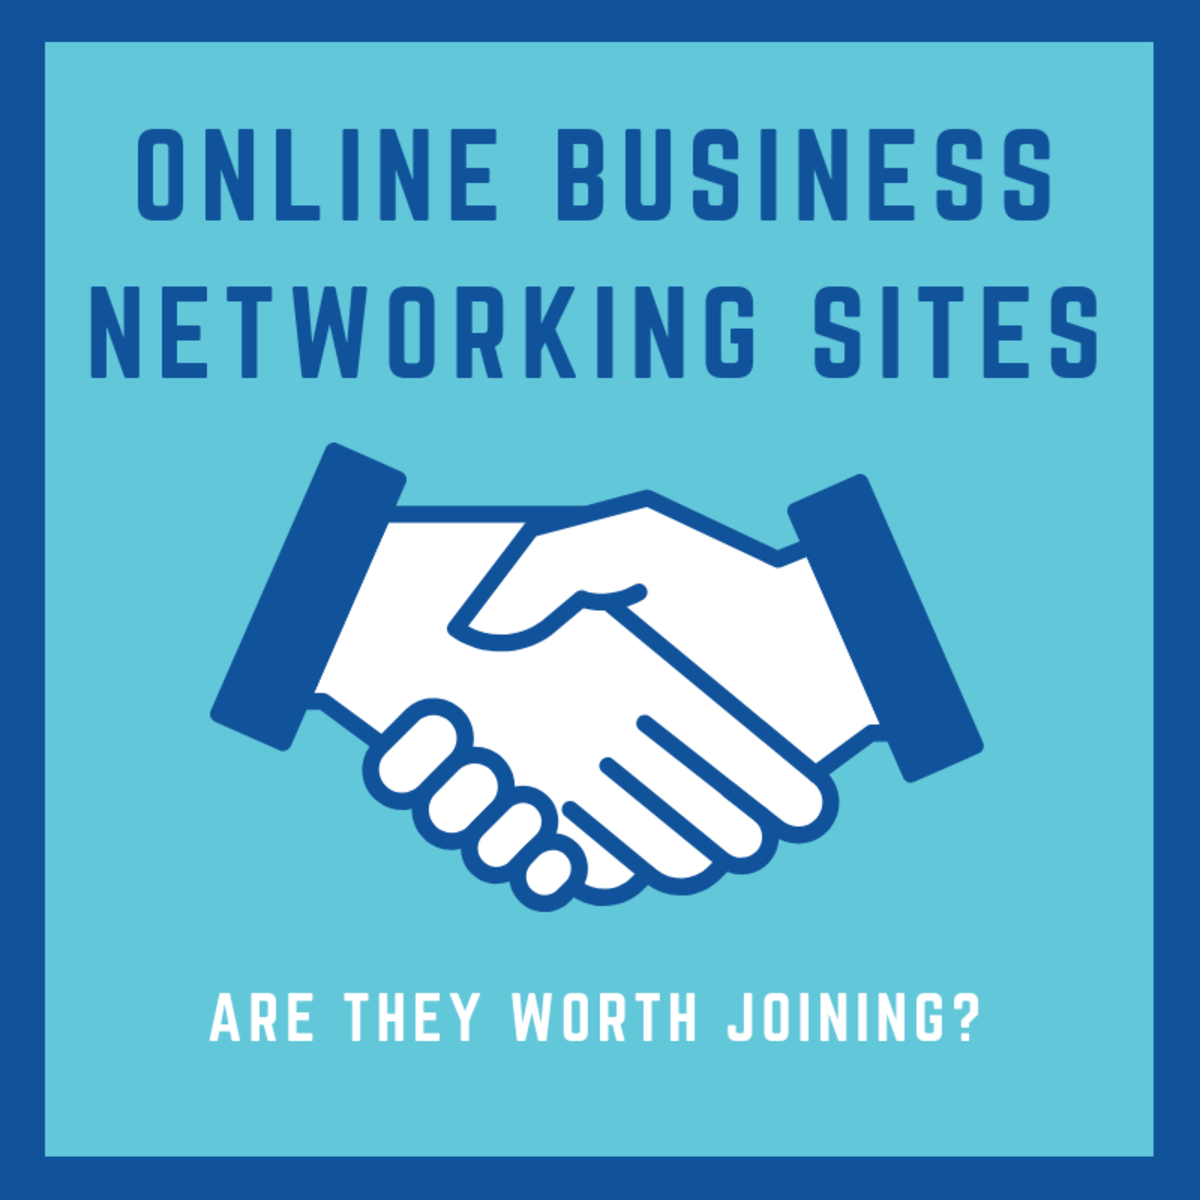 Online Business Networking Sites: Are They Worth Joining?